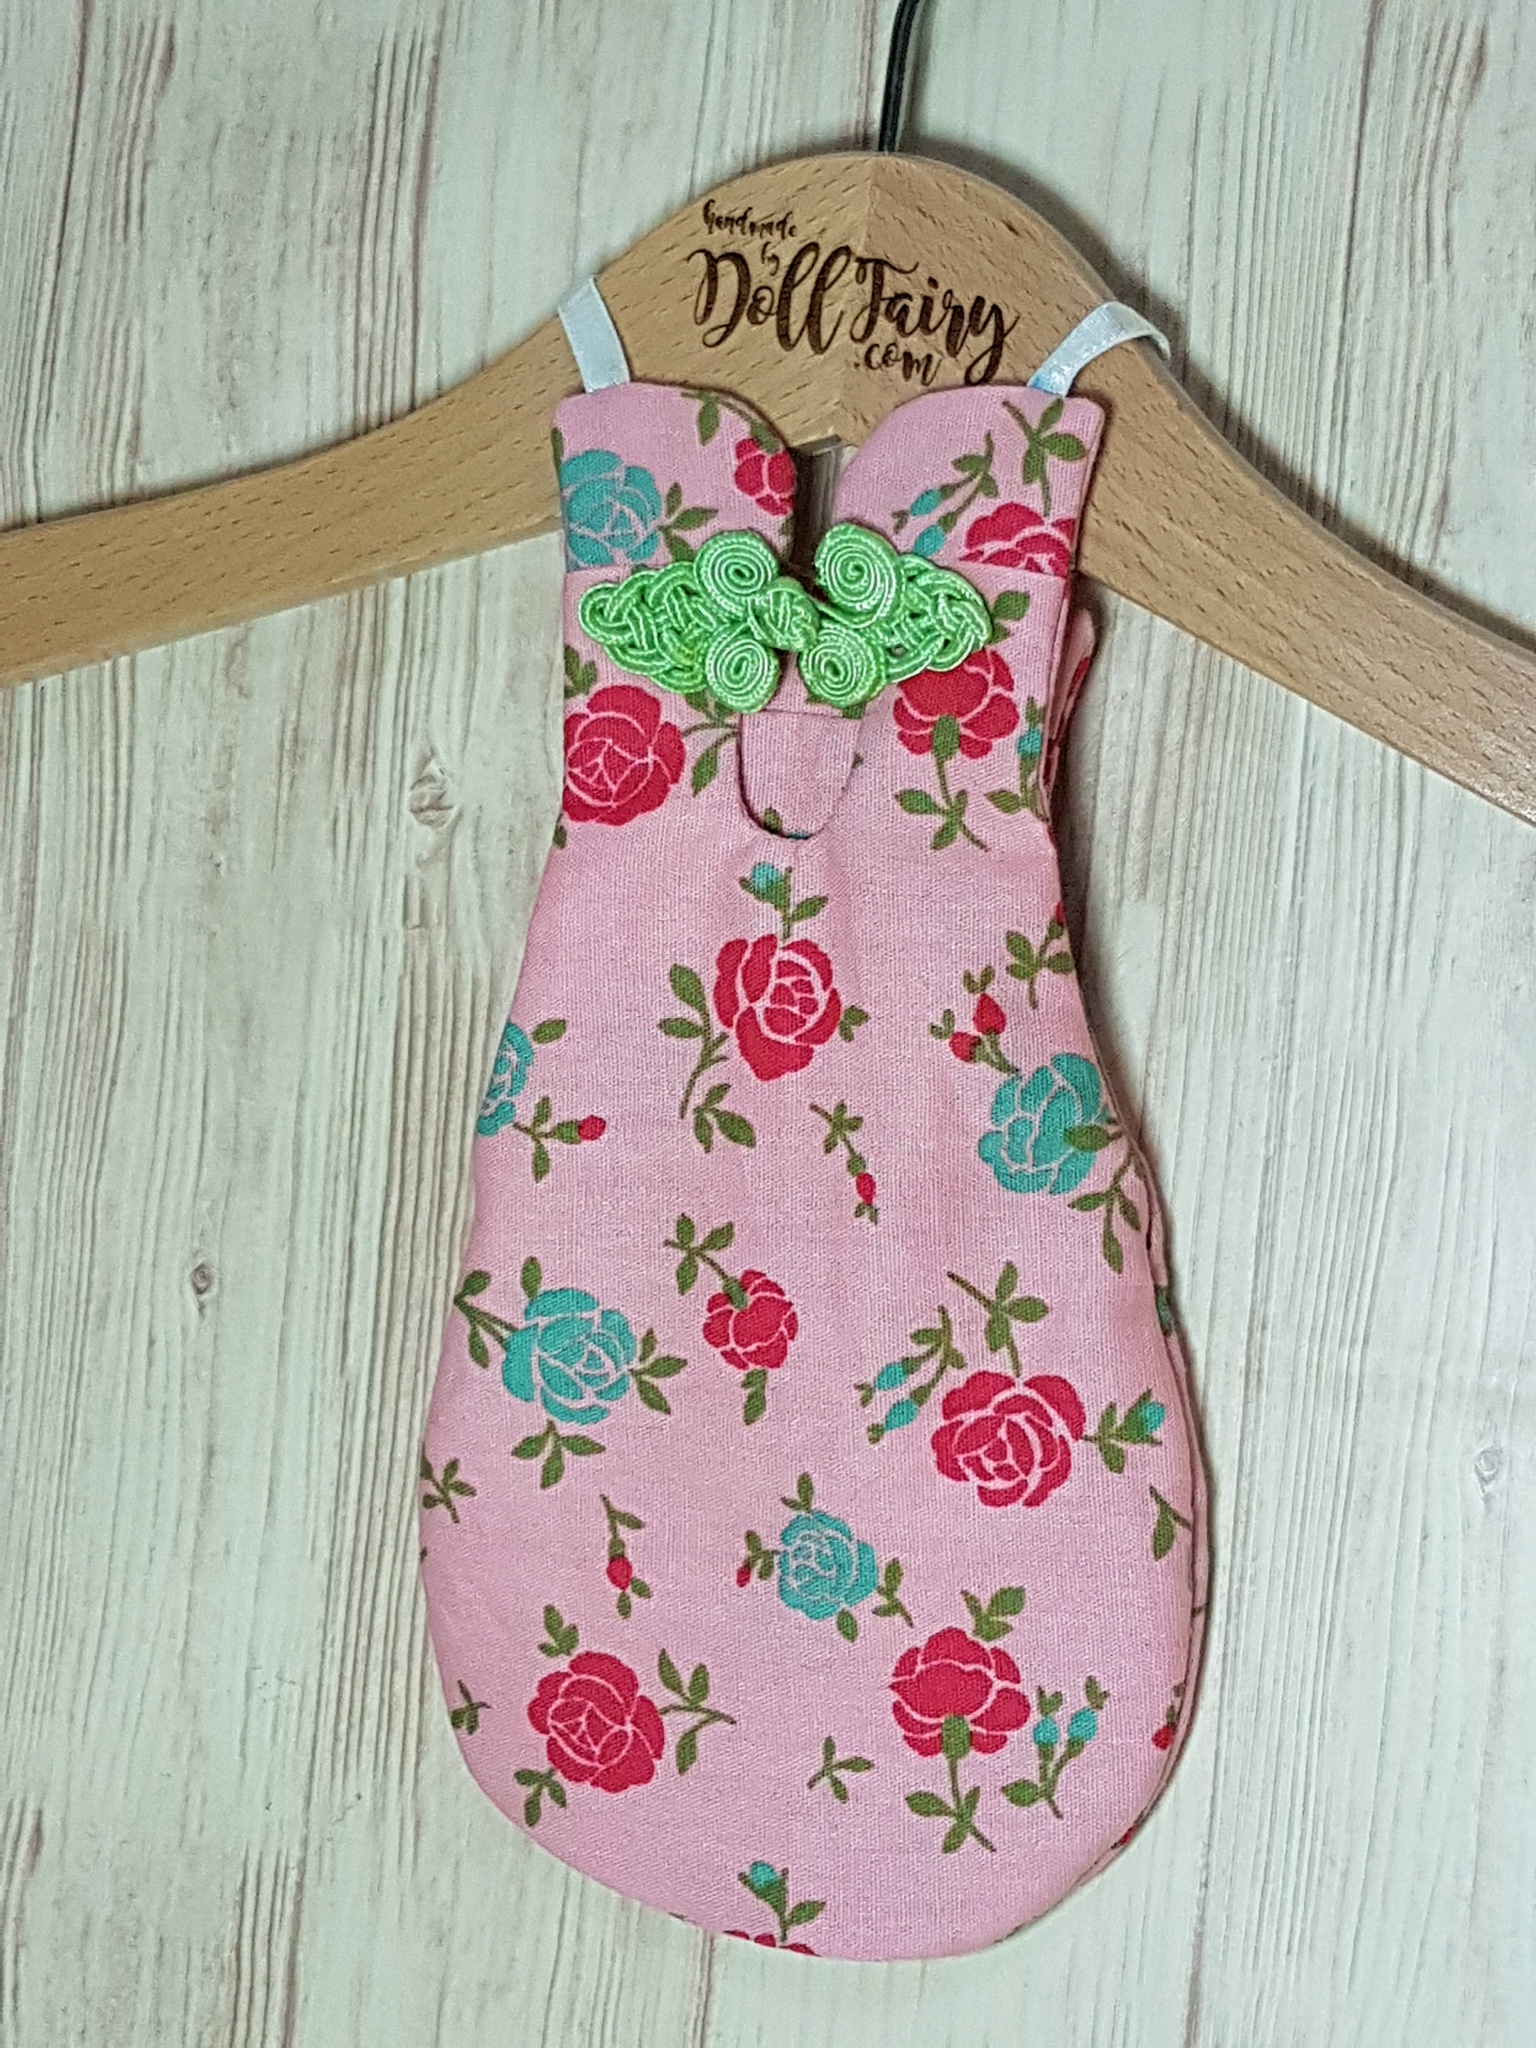 Classic halterneck floral cheongsam flight diaper suit for every parrot at any occasion.